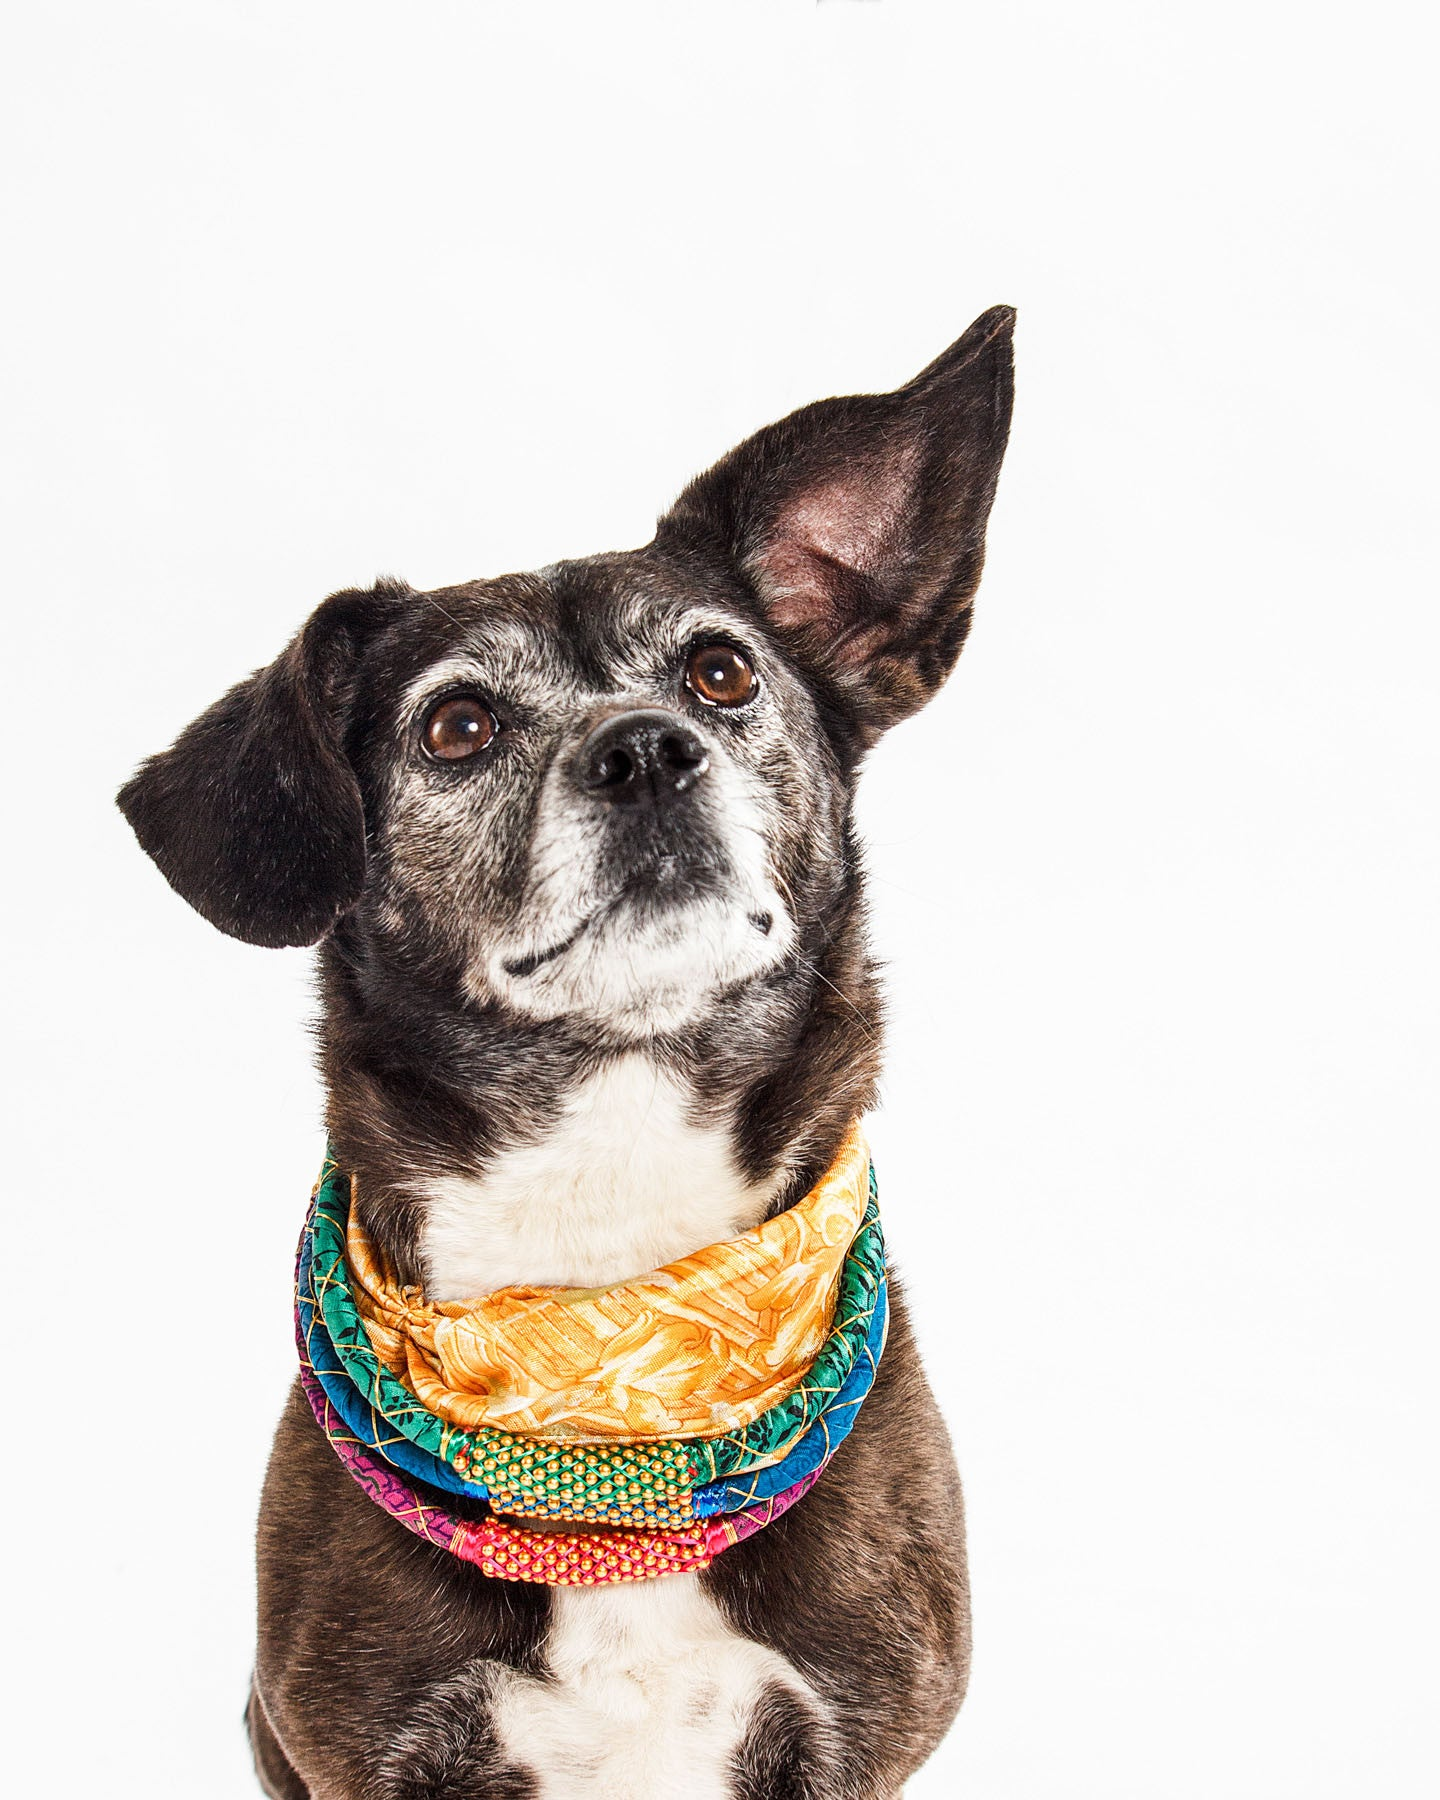 Sicily has big dreams of finding her forever home.  Wearing KabhiKabhi Necklaces  and the Anuragh Twist Headband.